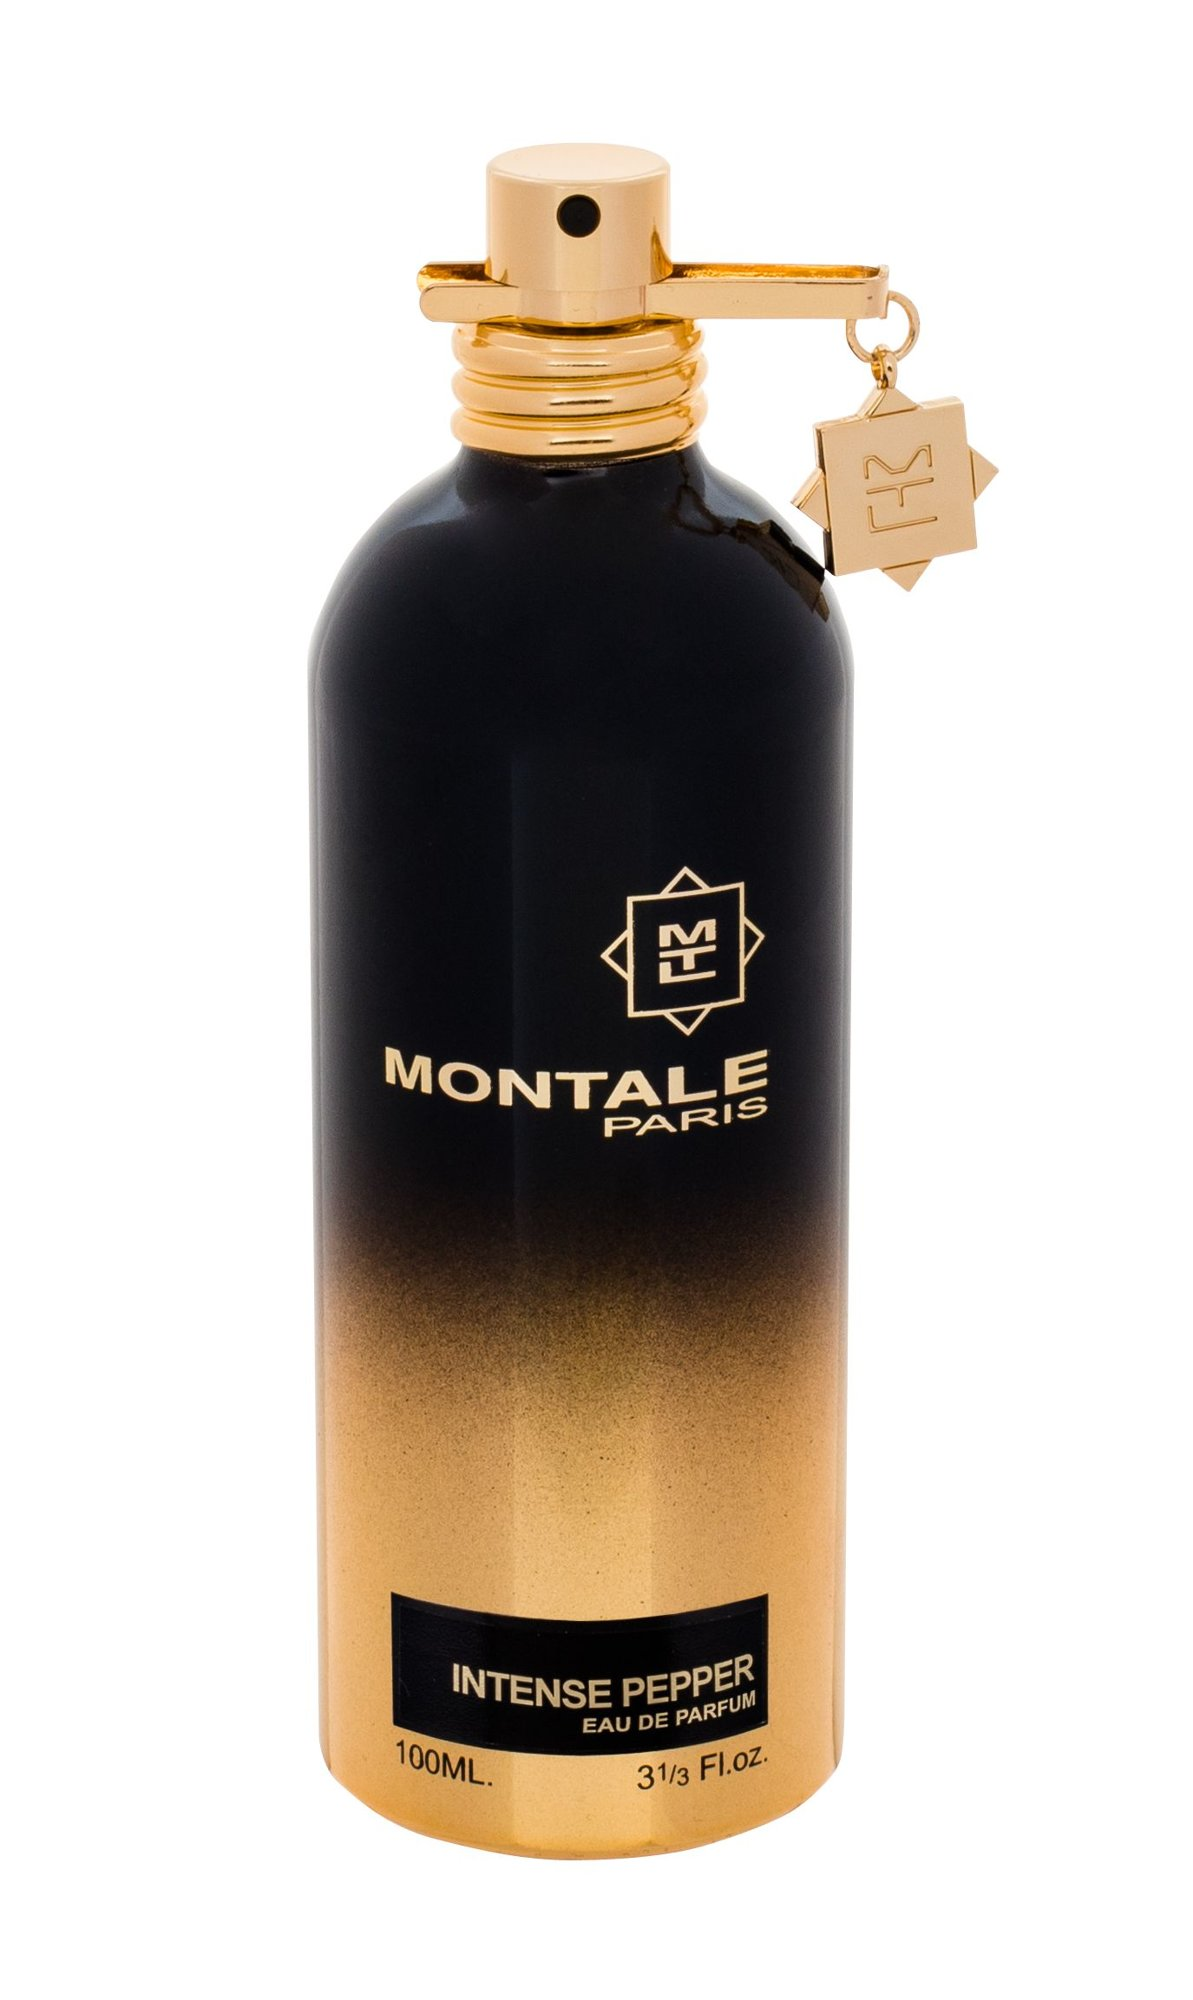 Montale Paris Intense Pepper EDP 100ml